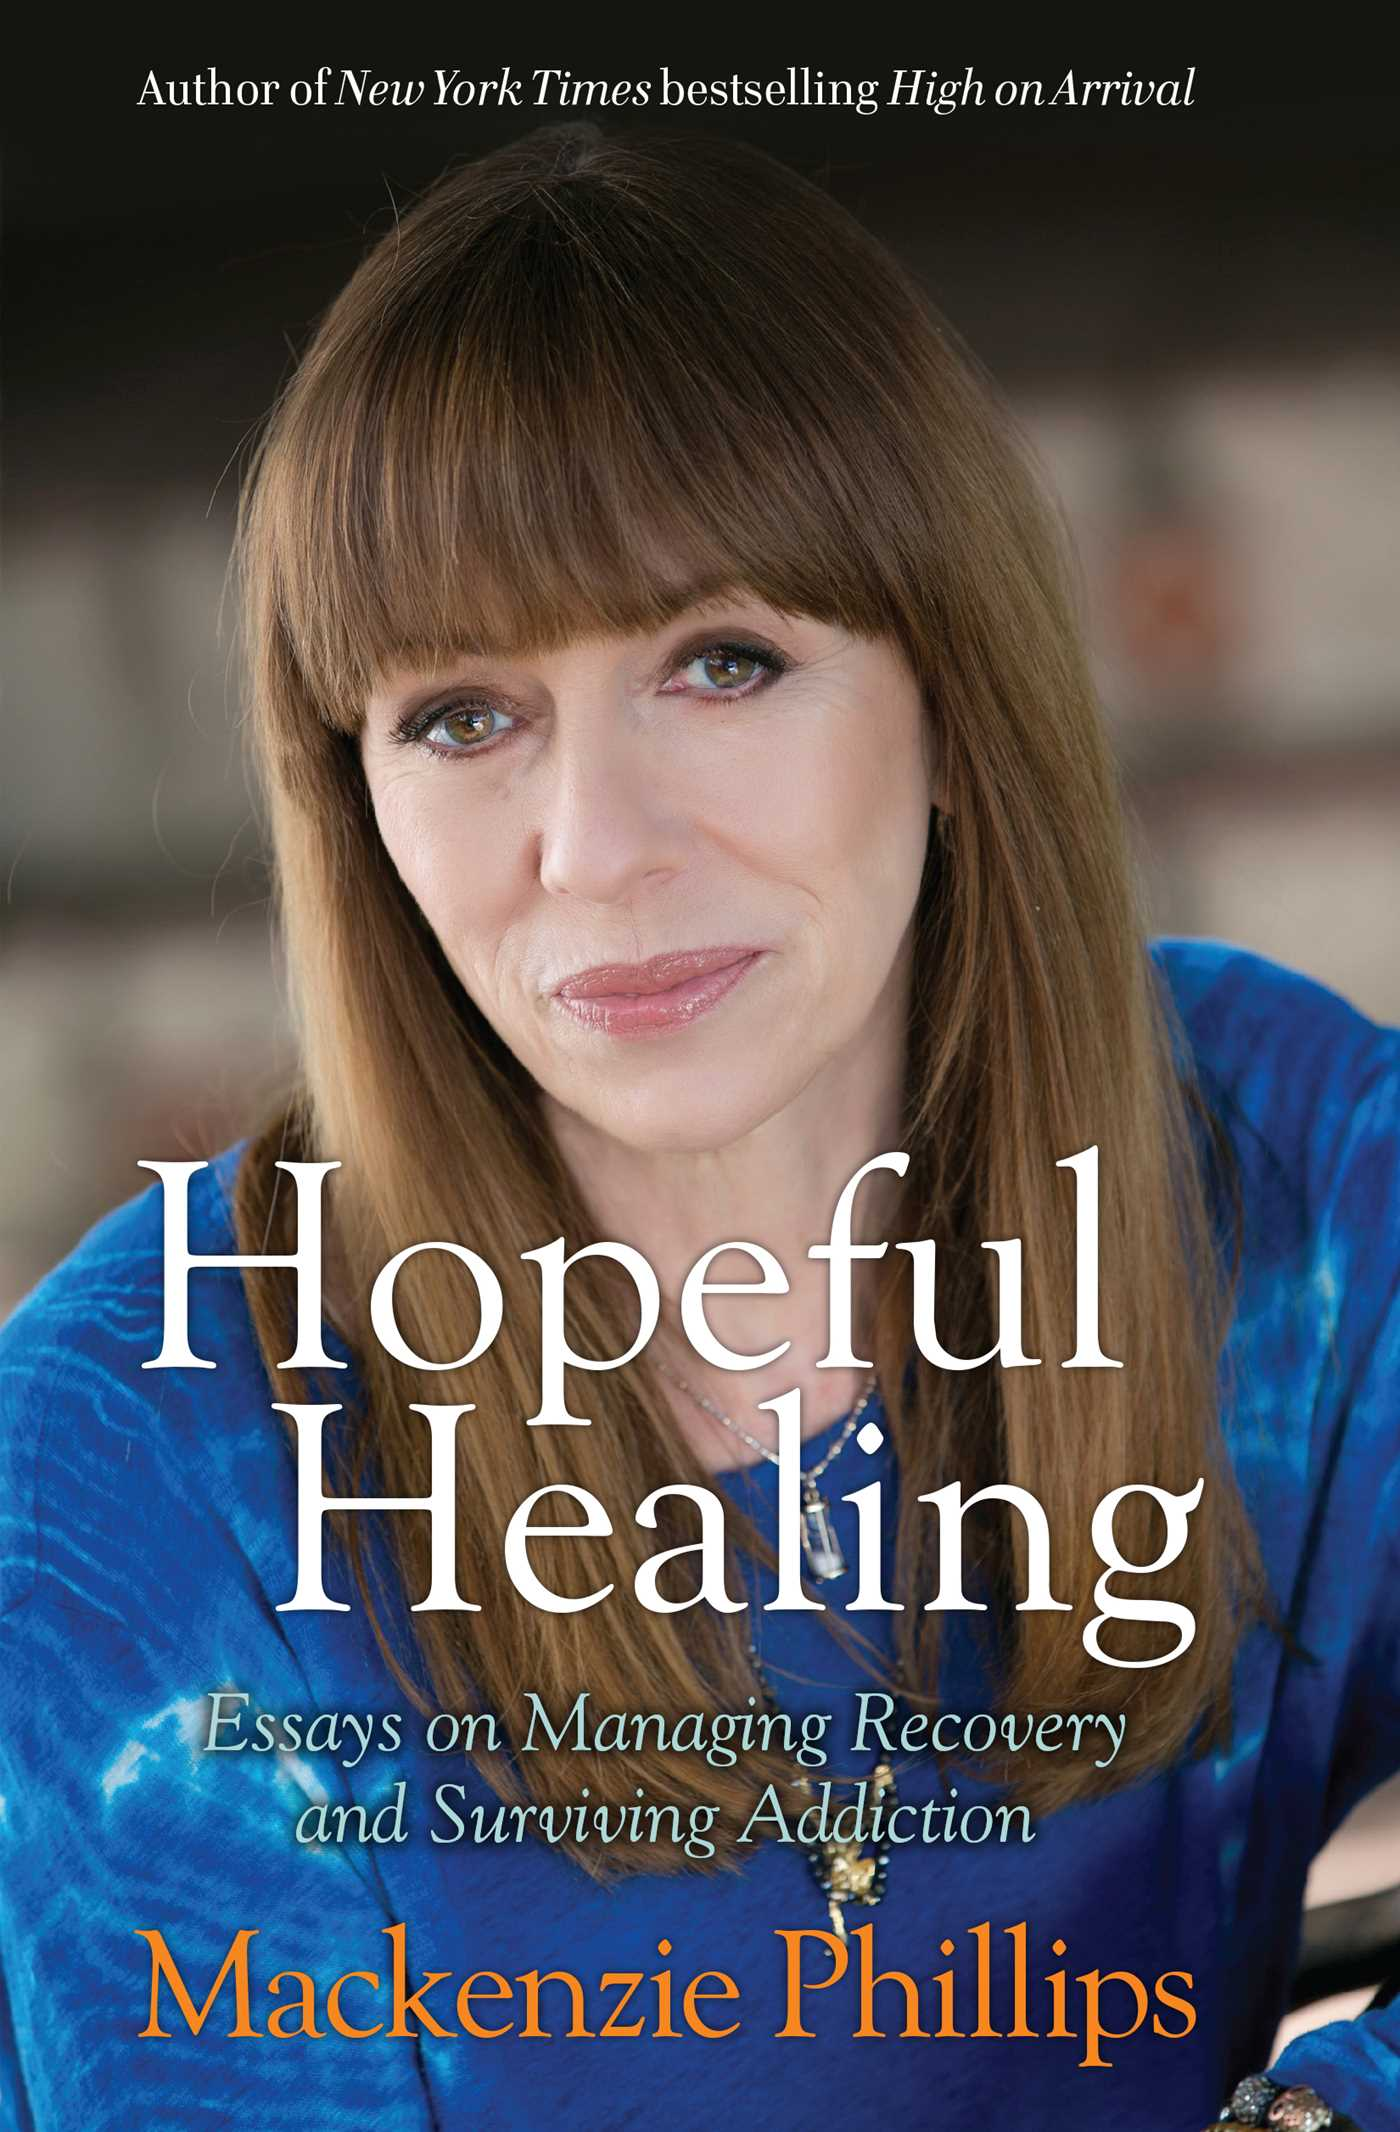 Hopeful healing 9781582705705 hr